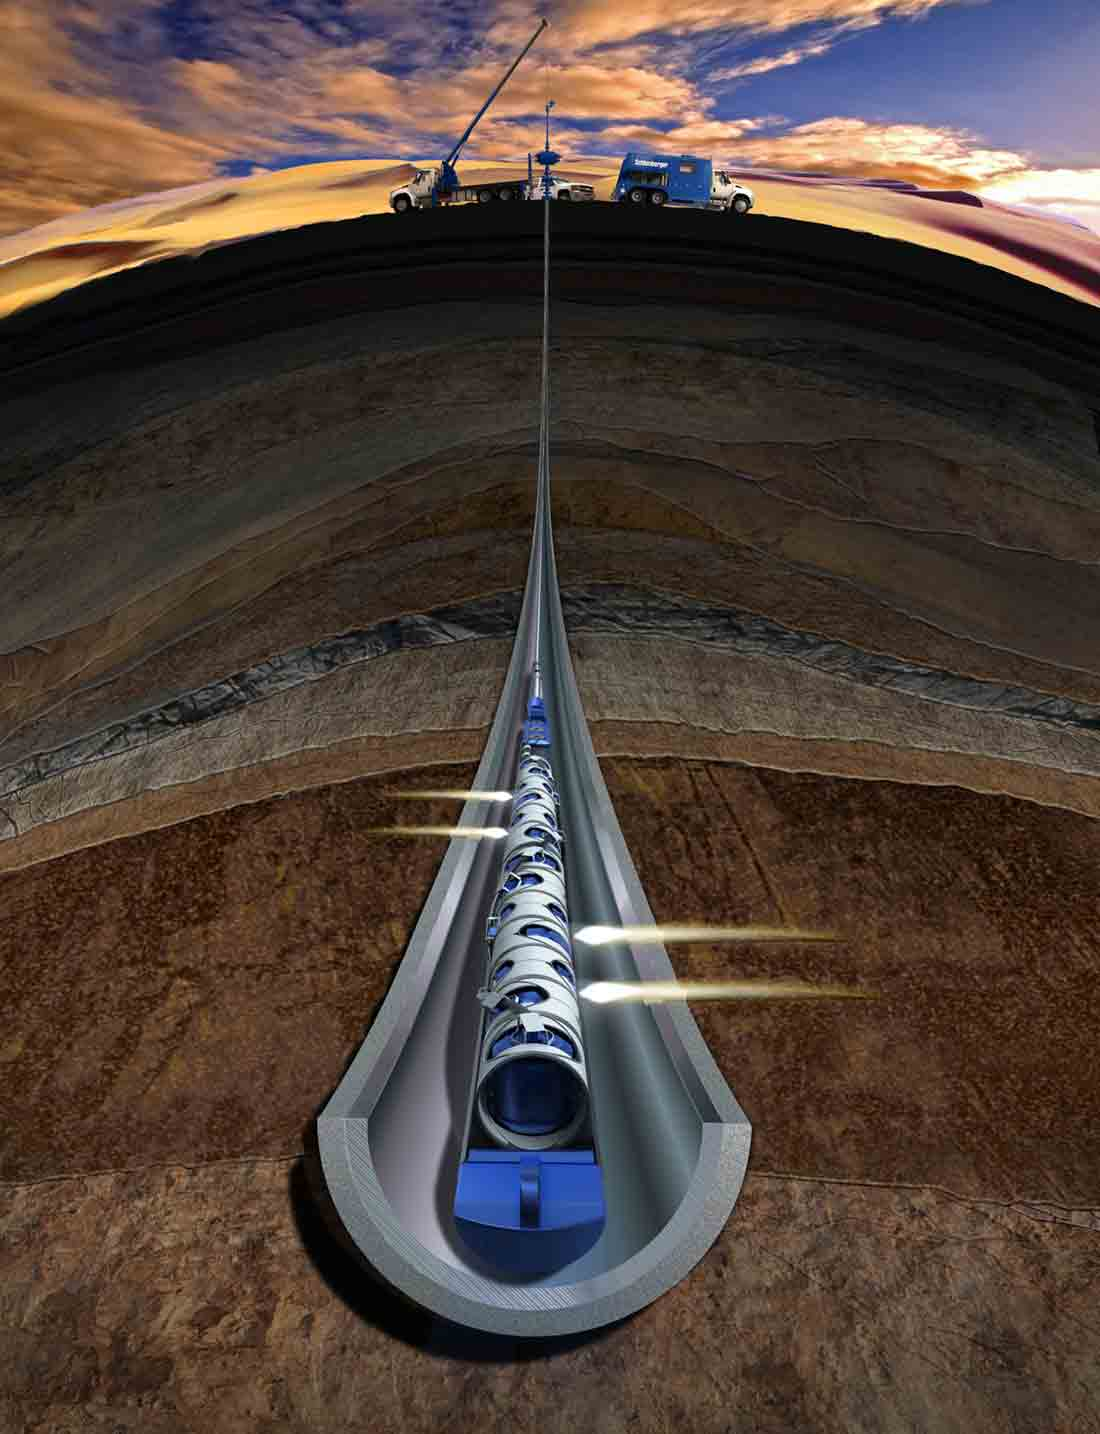 Control and monitor downhole operations with certainty.